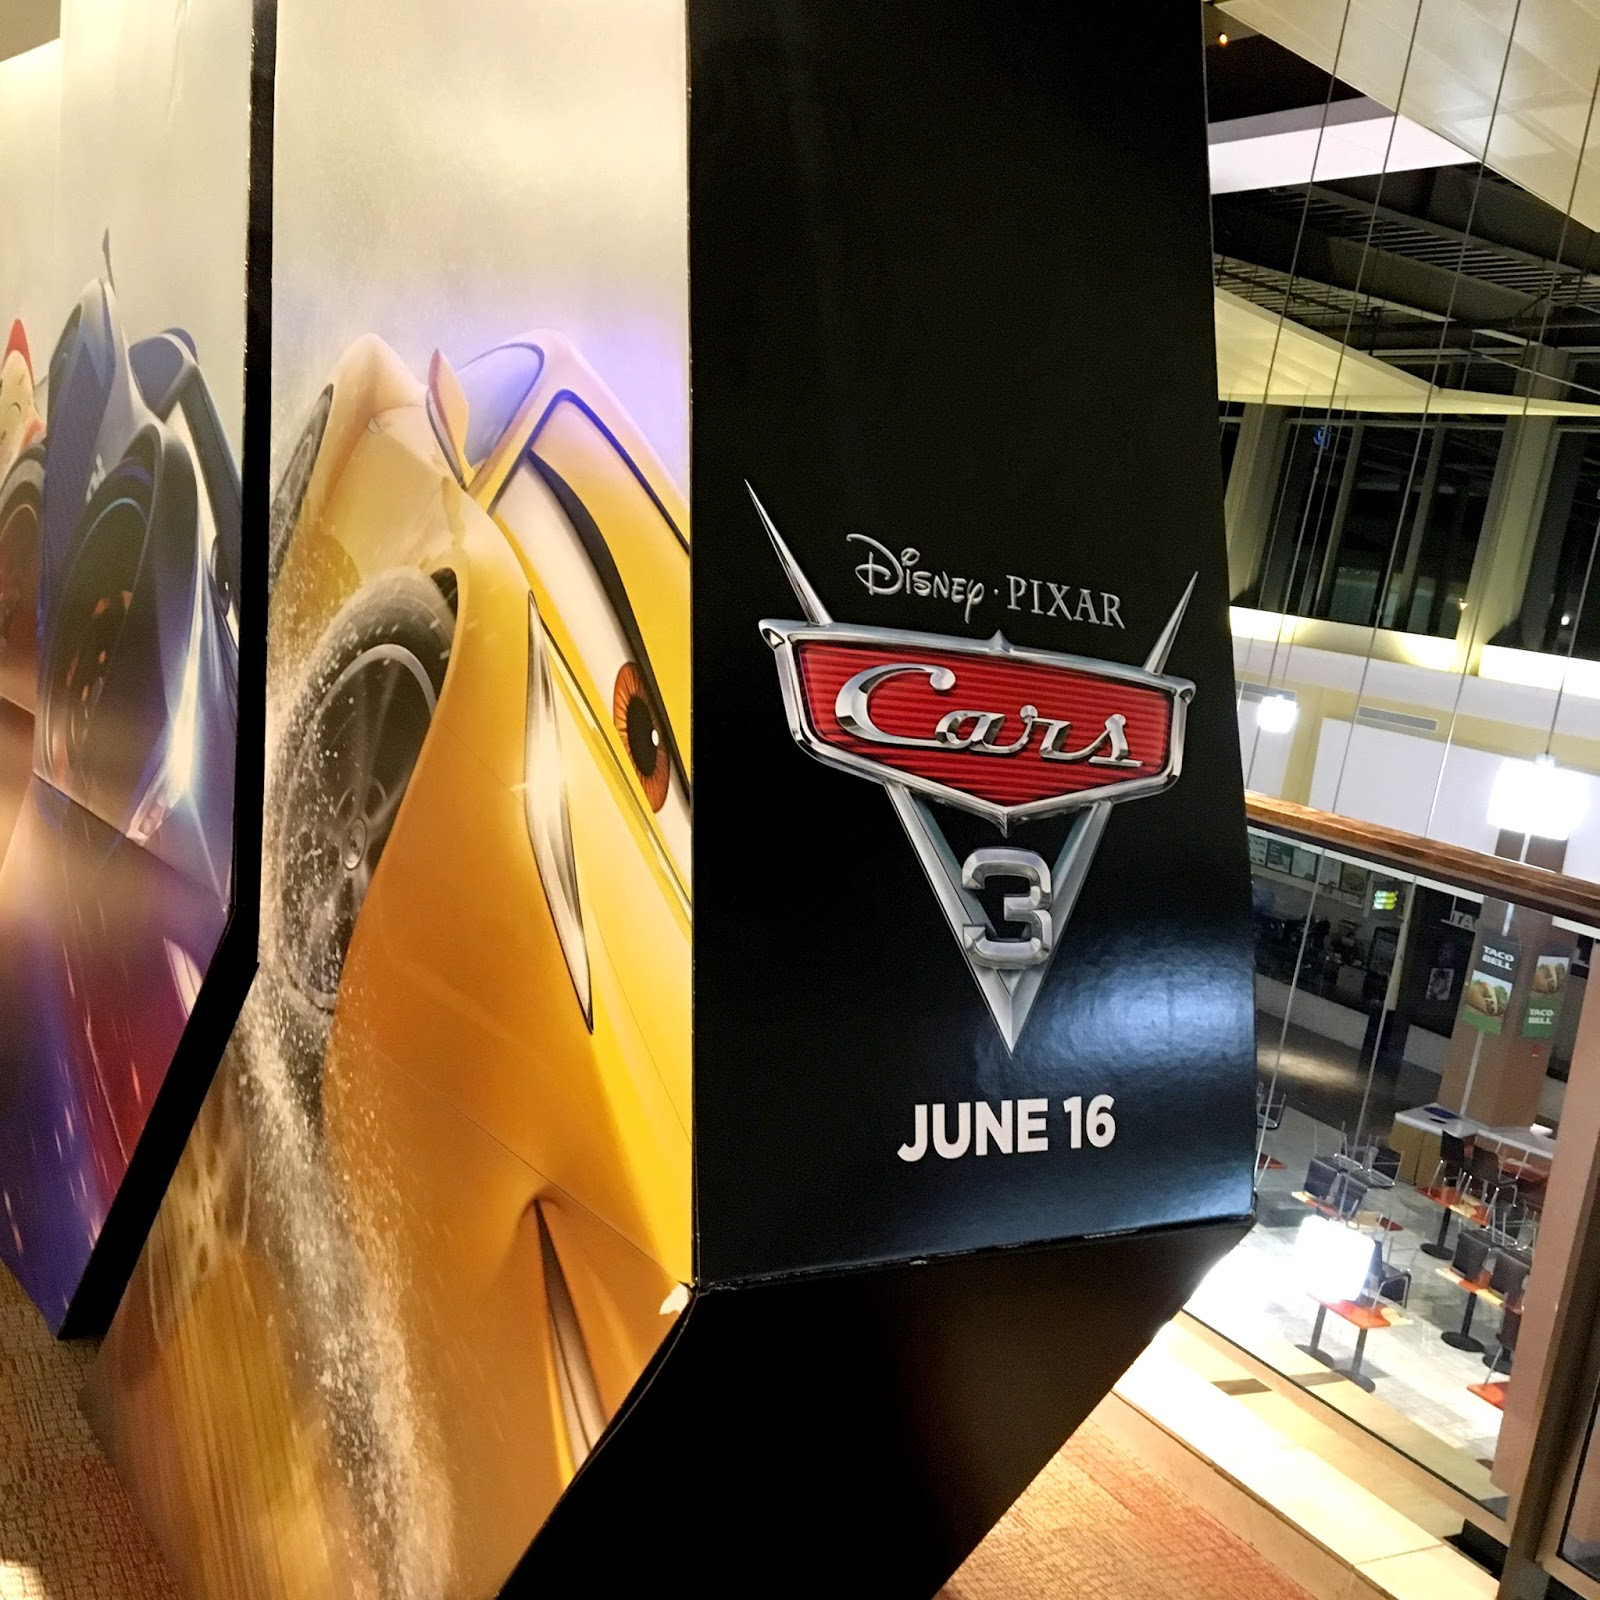 Disney·Pixar Cars 3 Movie Theater Display